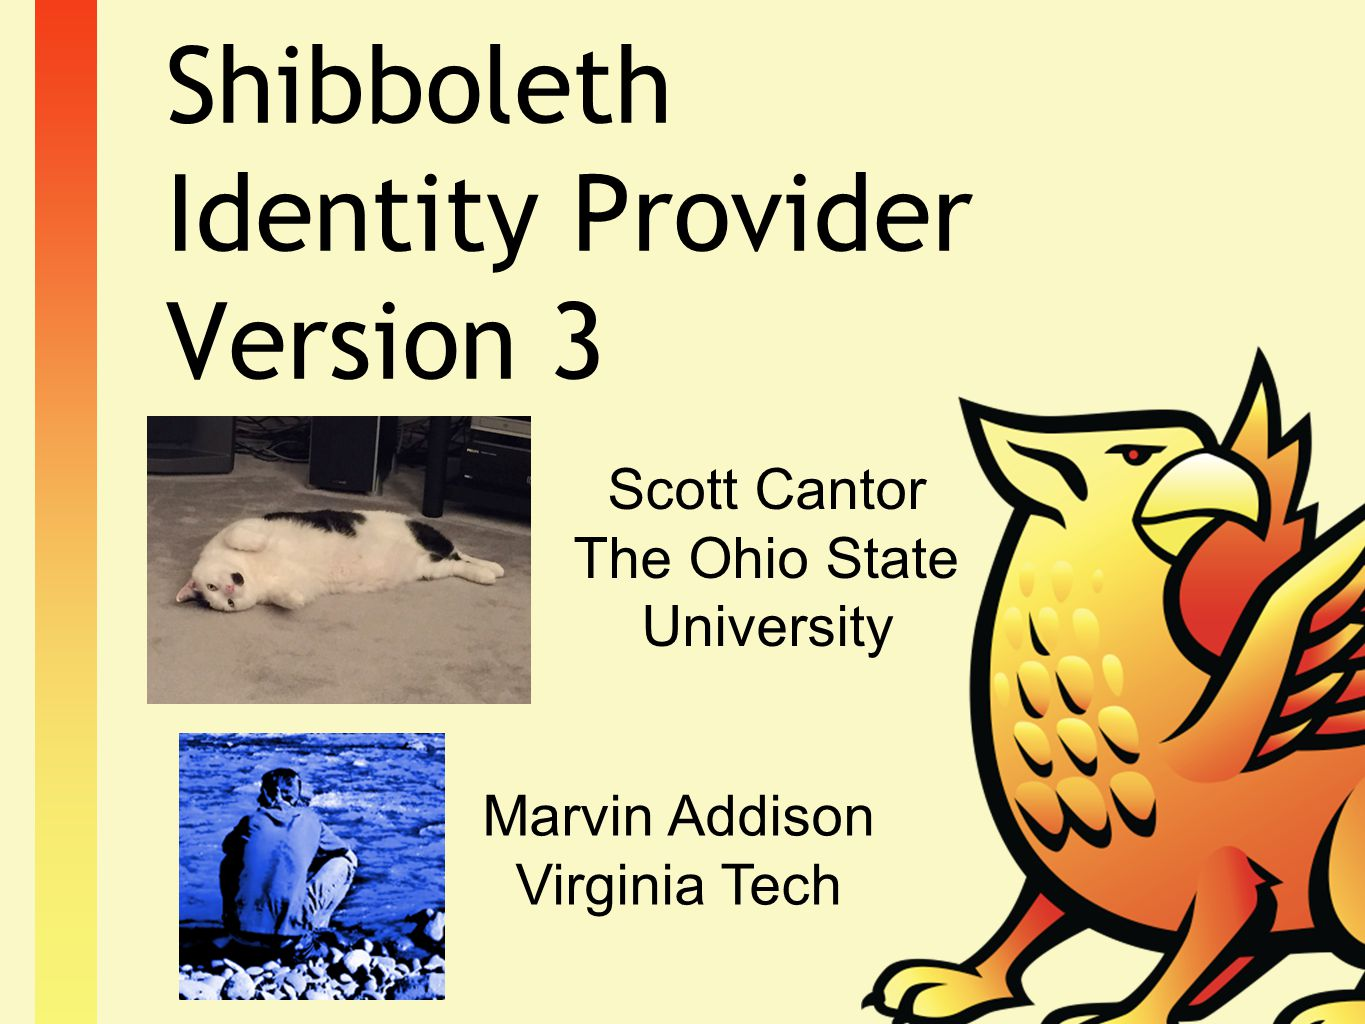 Shibboleth Identity Provider Version 3